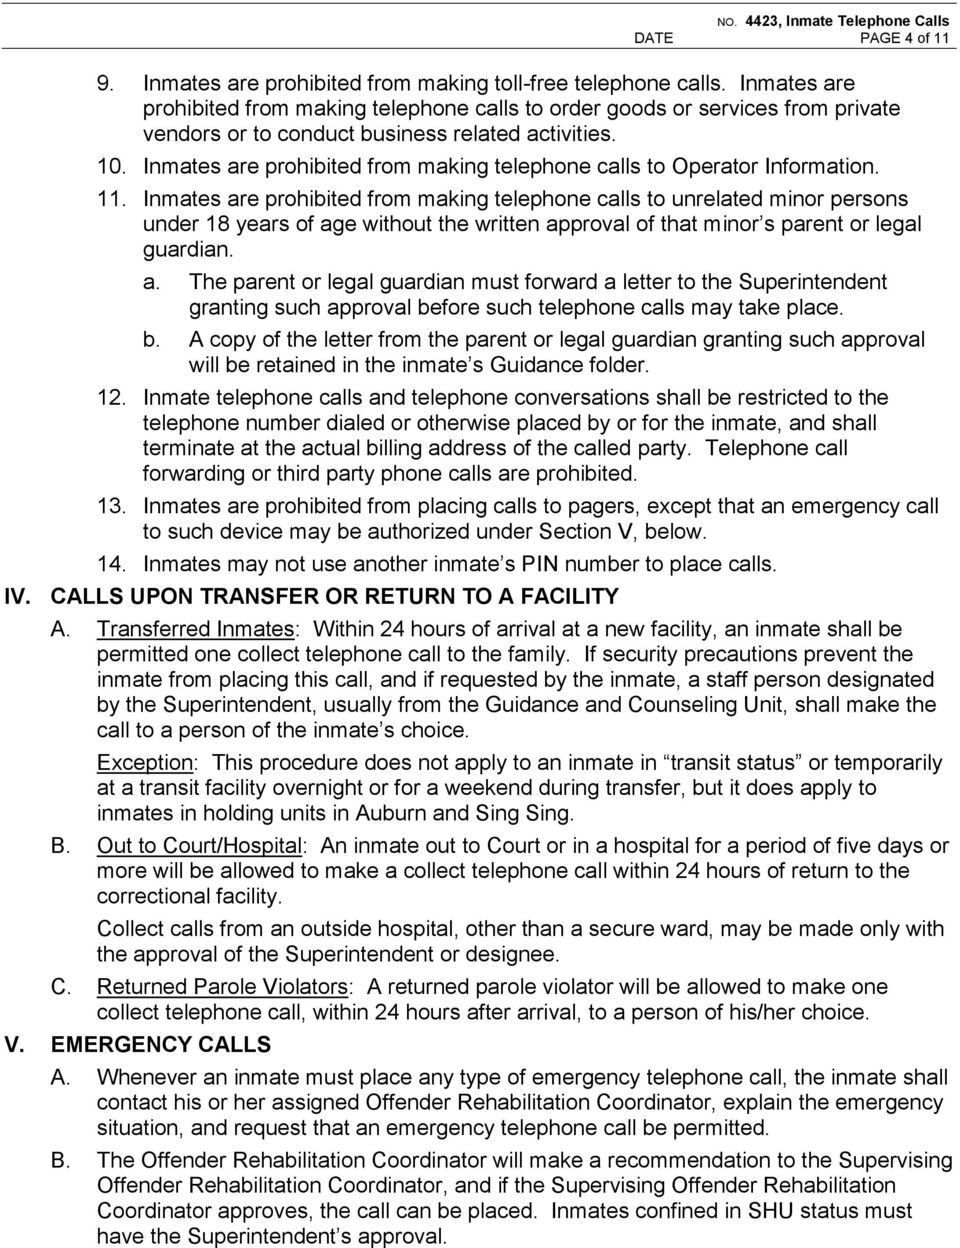 Inmates are prohibited from making telephone calls to Operator Information. 11.